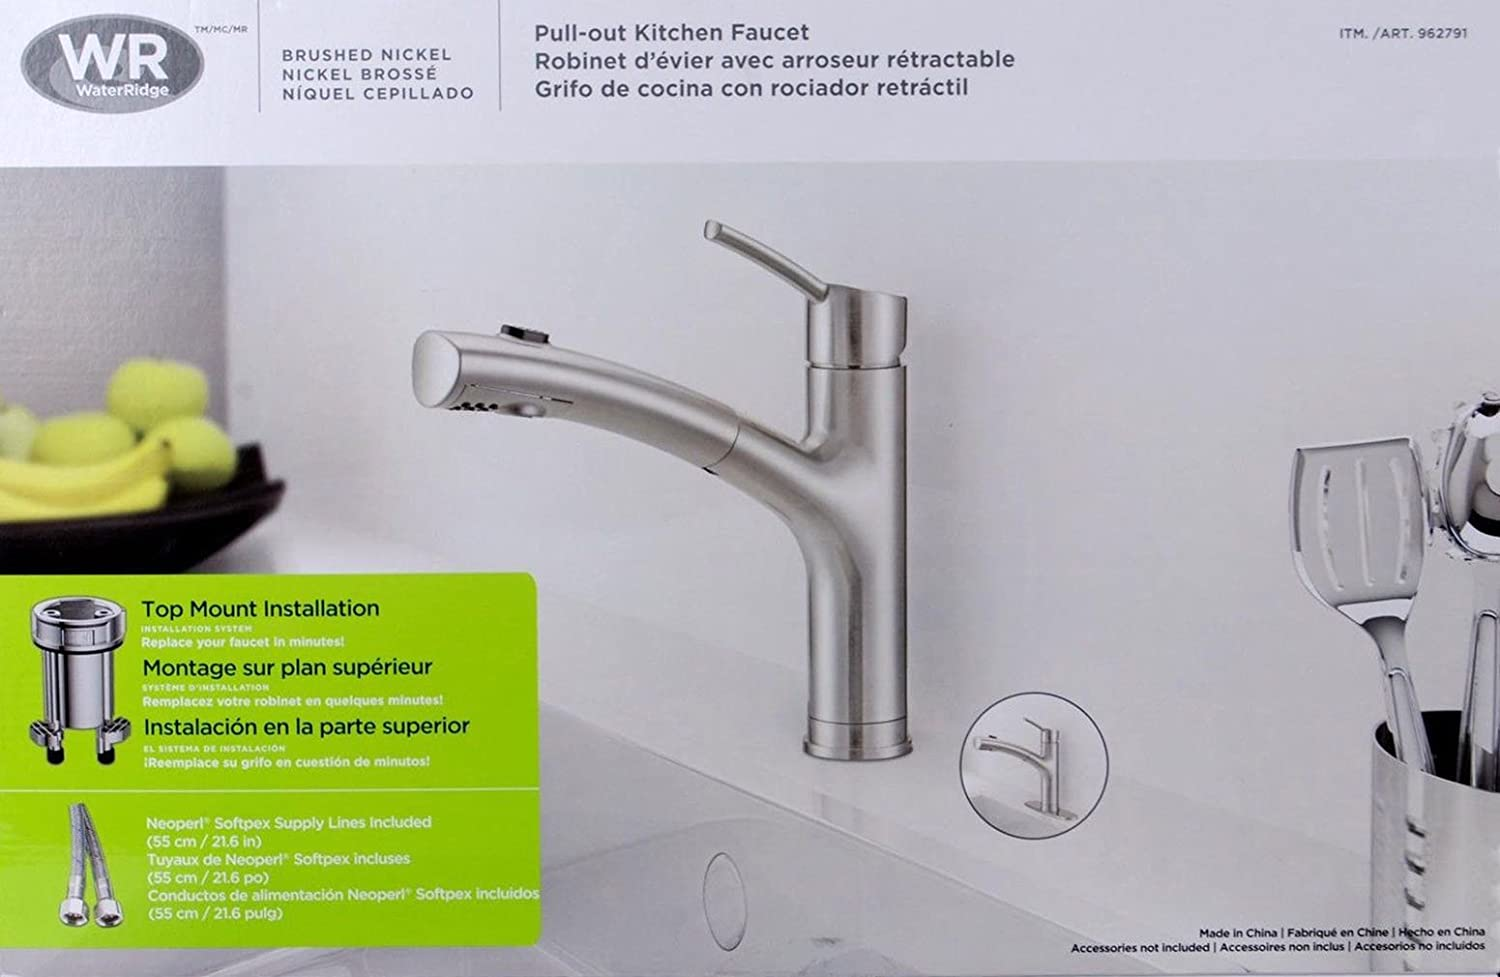 Water Ridge Brushed Nickel Pull Out Kitchen Faucet Fp2b0000